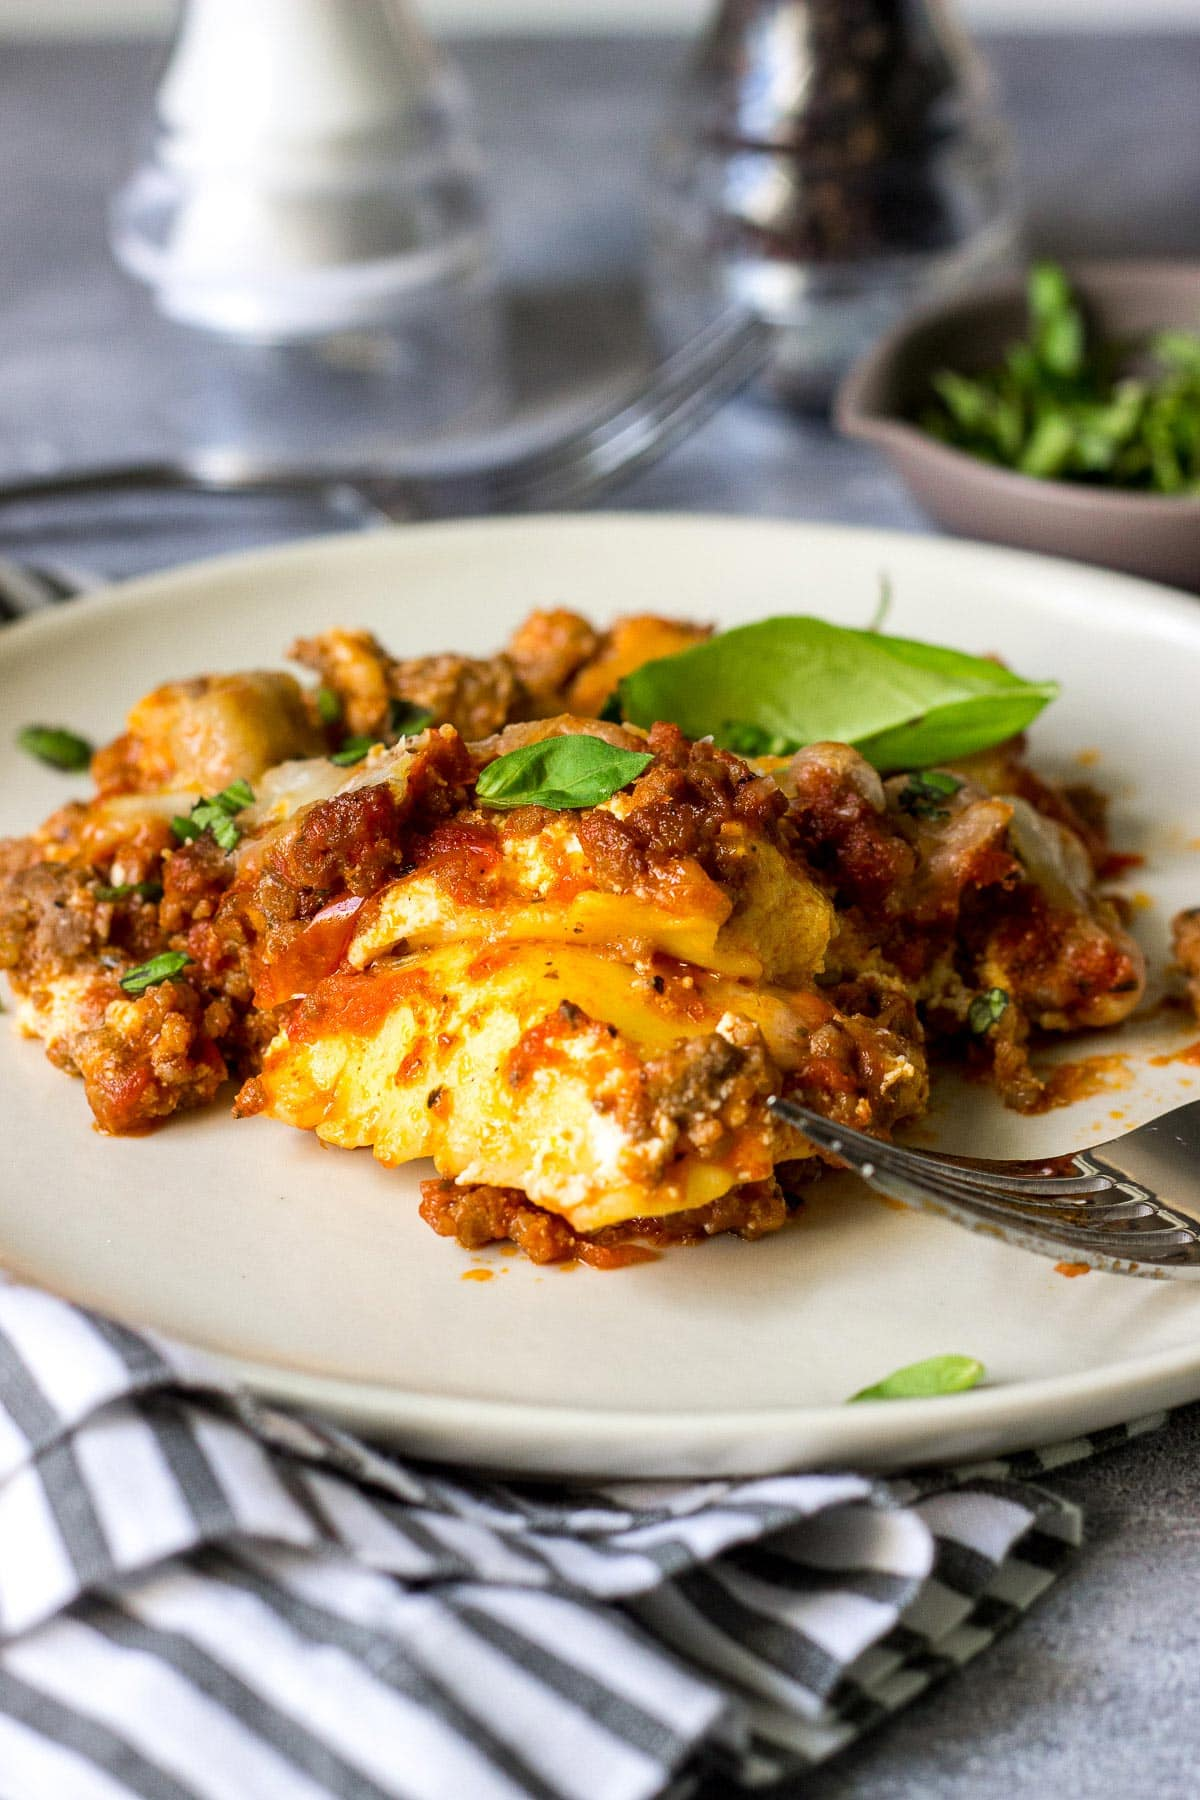 A hearty serving of ravioli lasagna on a plate topped with fresh basil.